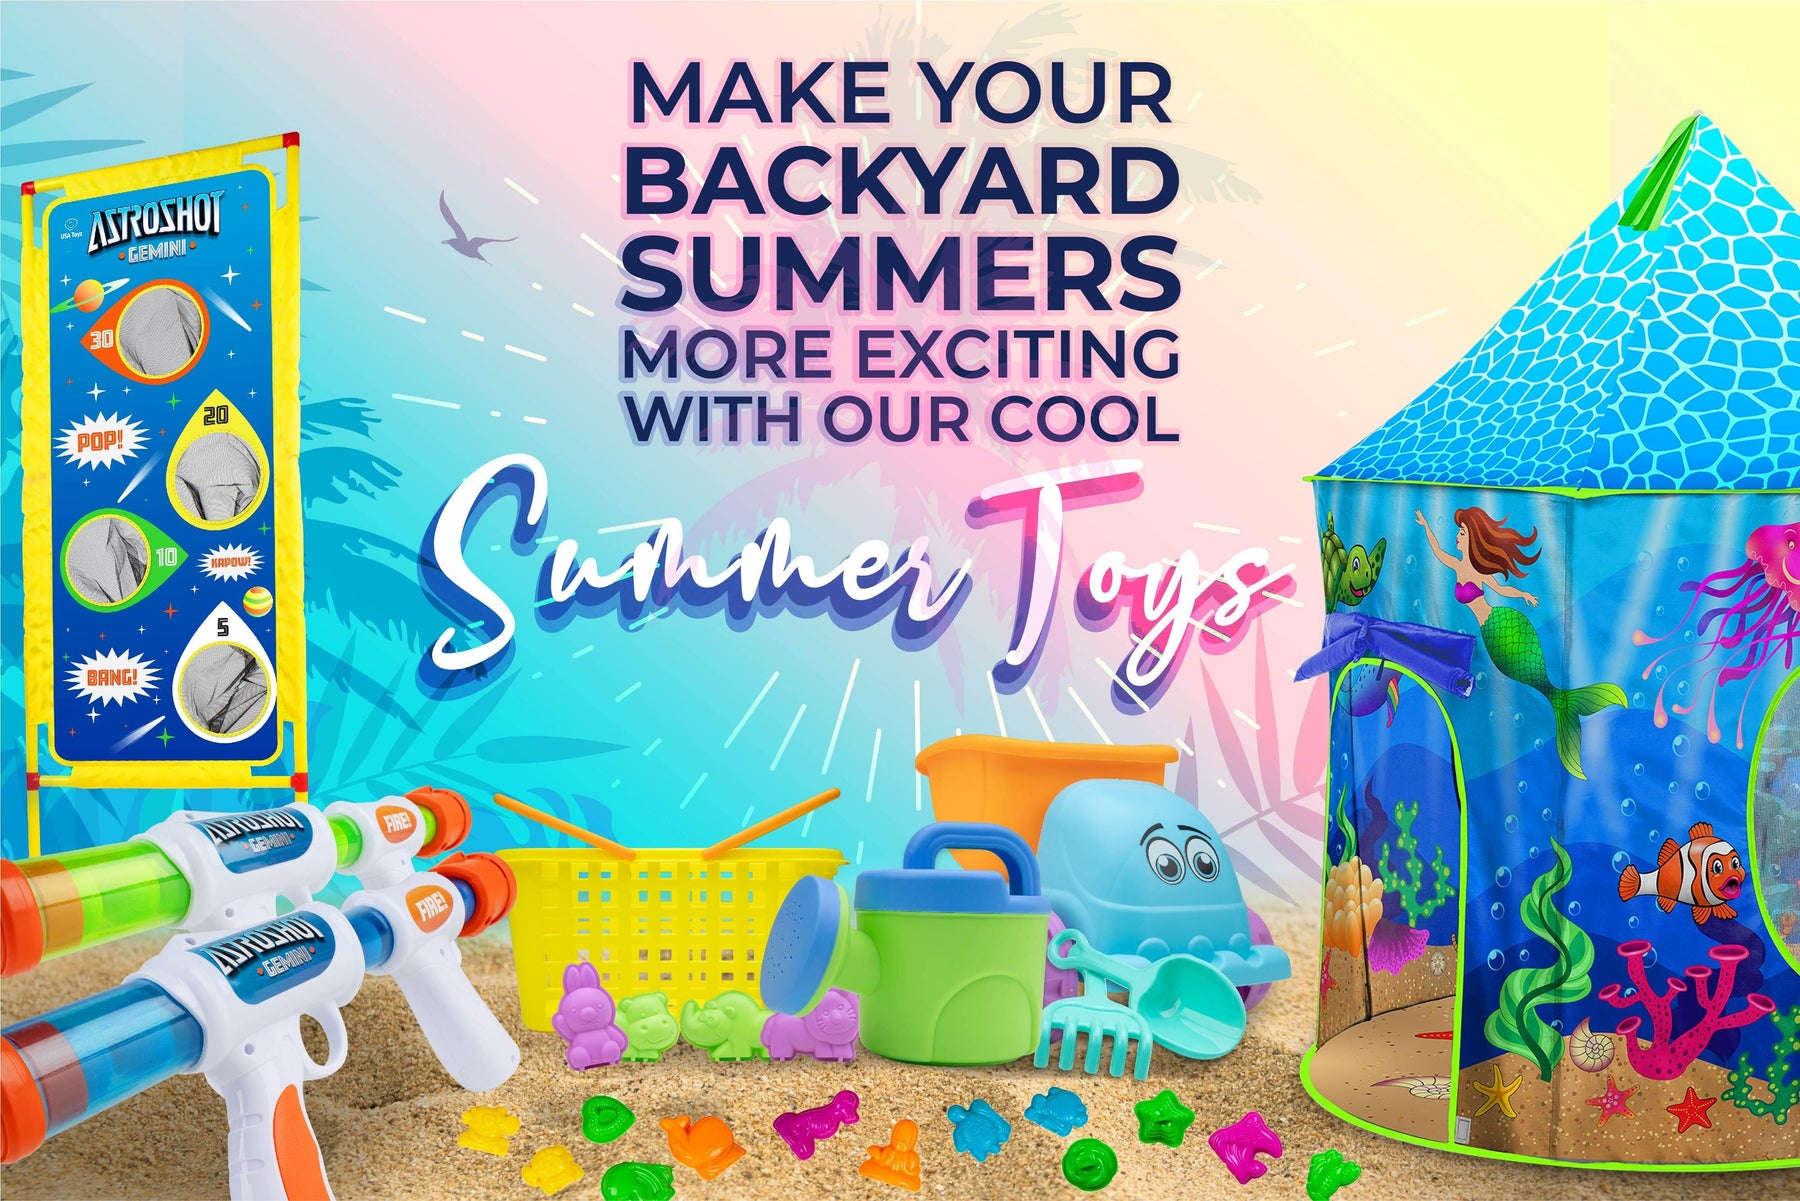 USA Toyz Summer Buyer's Guide 2020